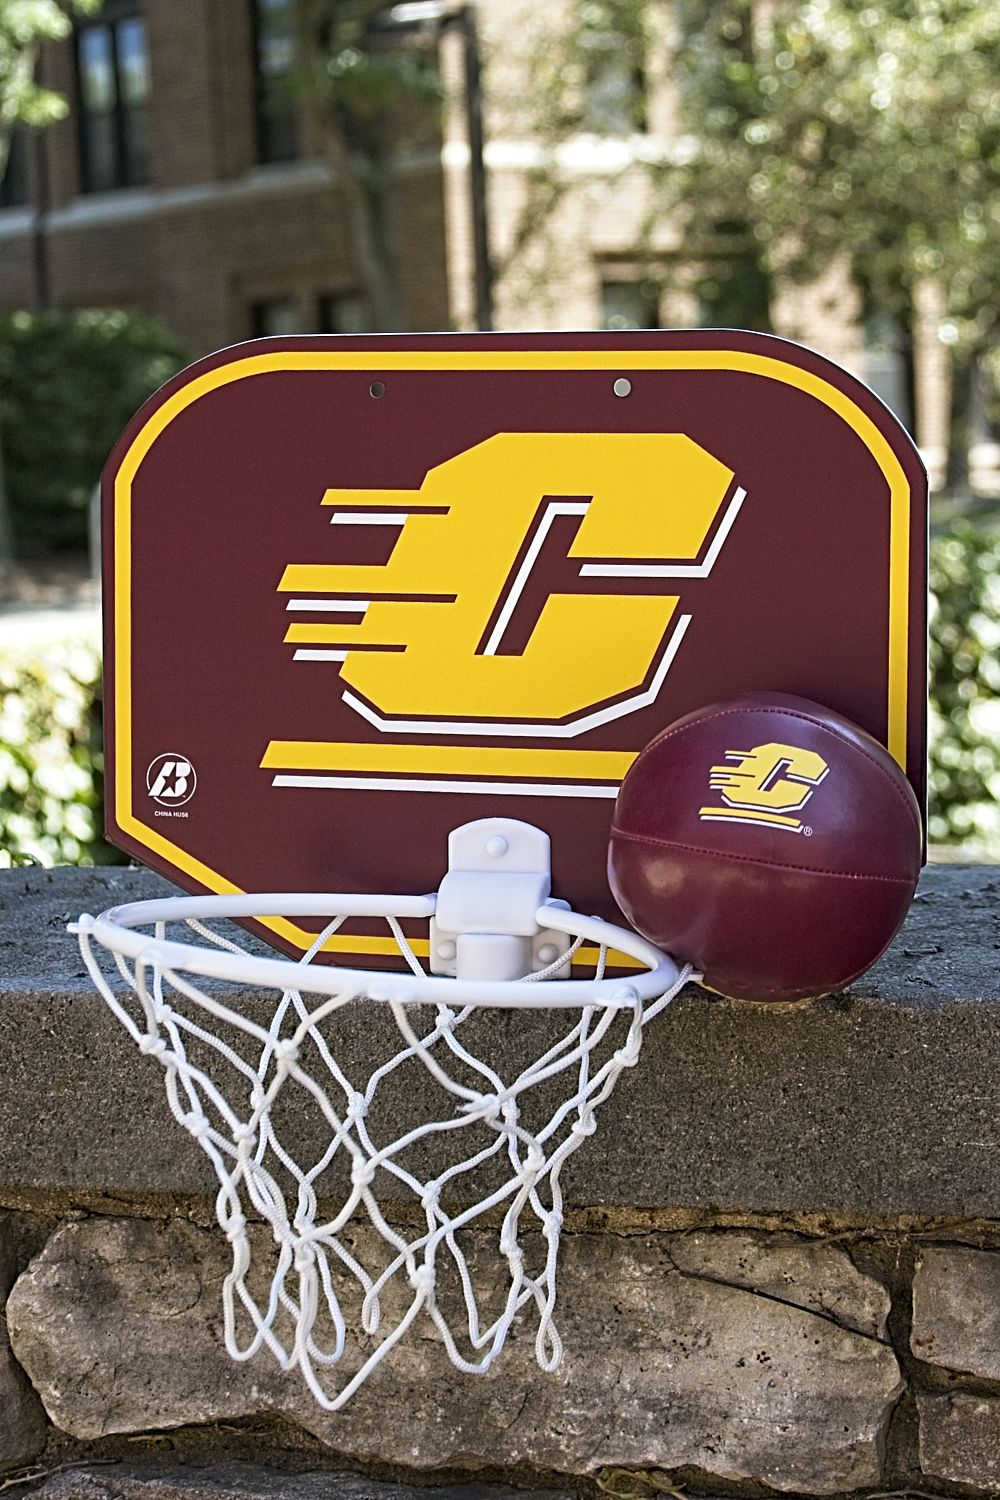 Flying C Maroon And Gold Soft Basketball With Hoop (SKU 5016246847)